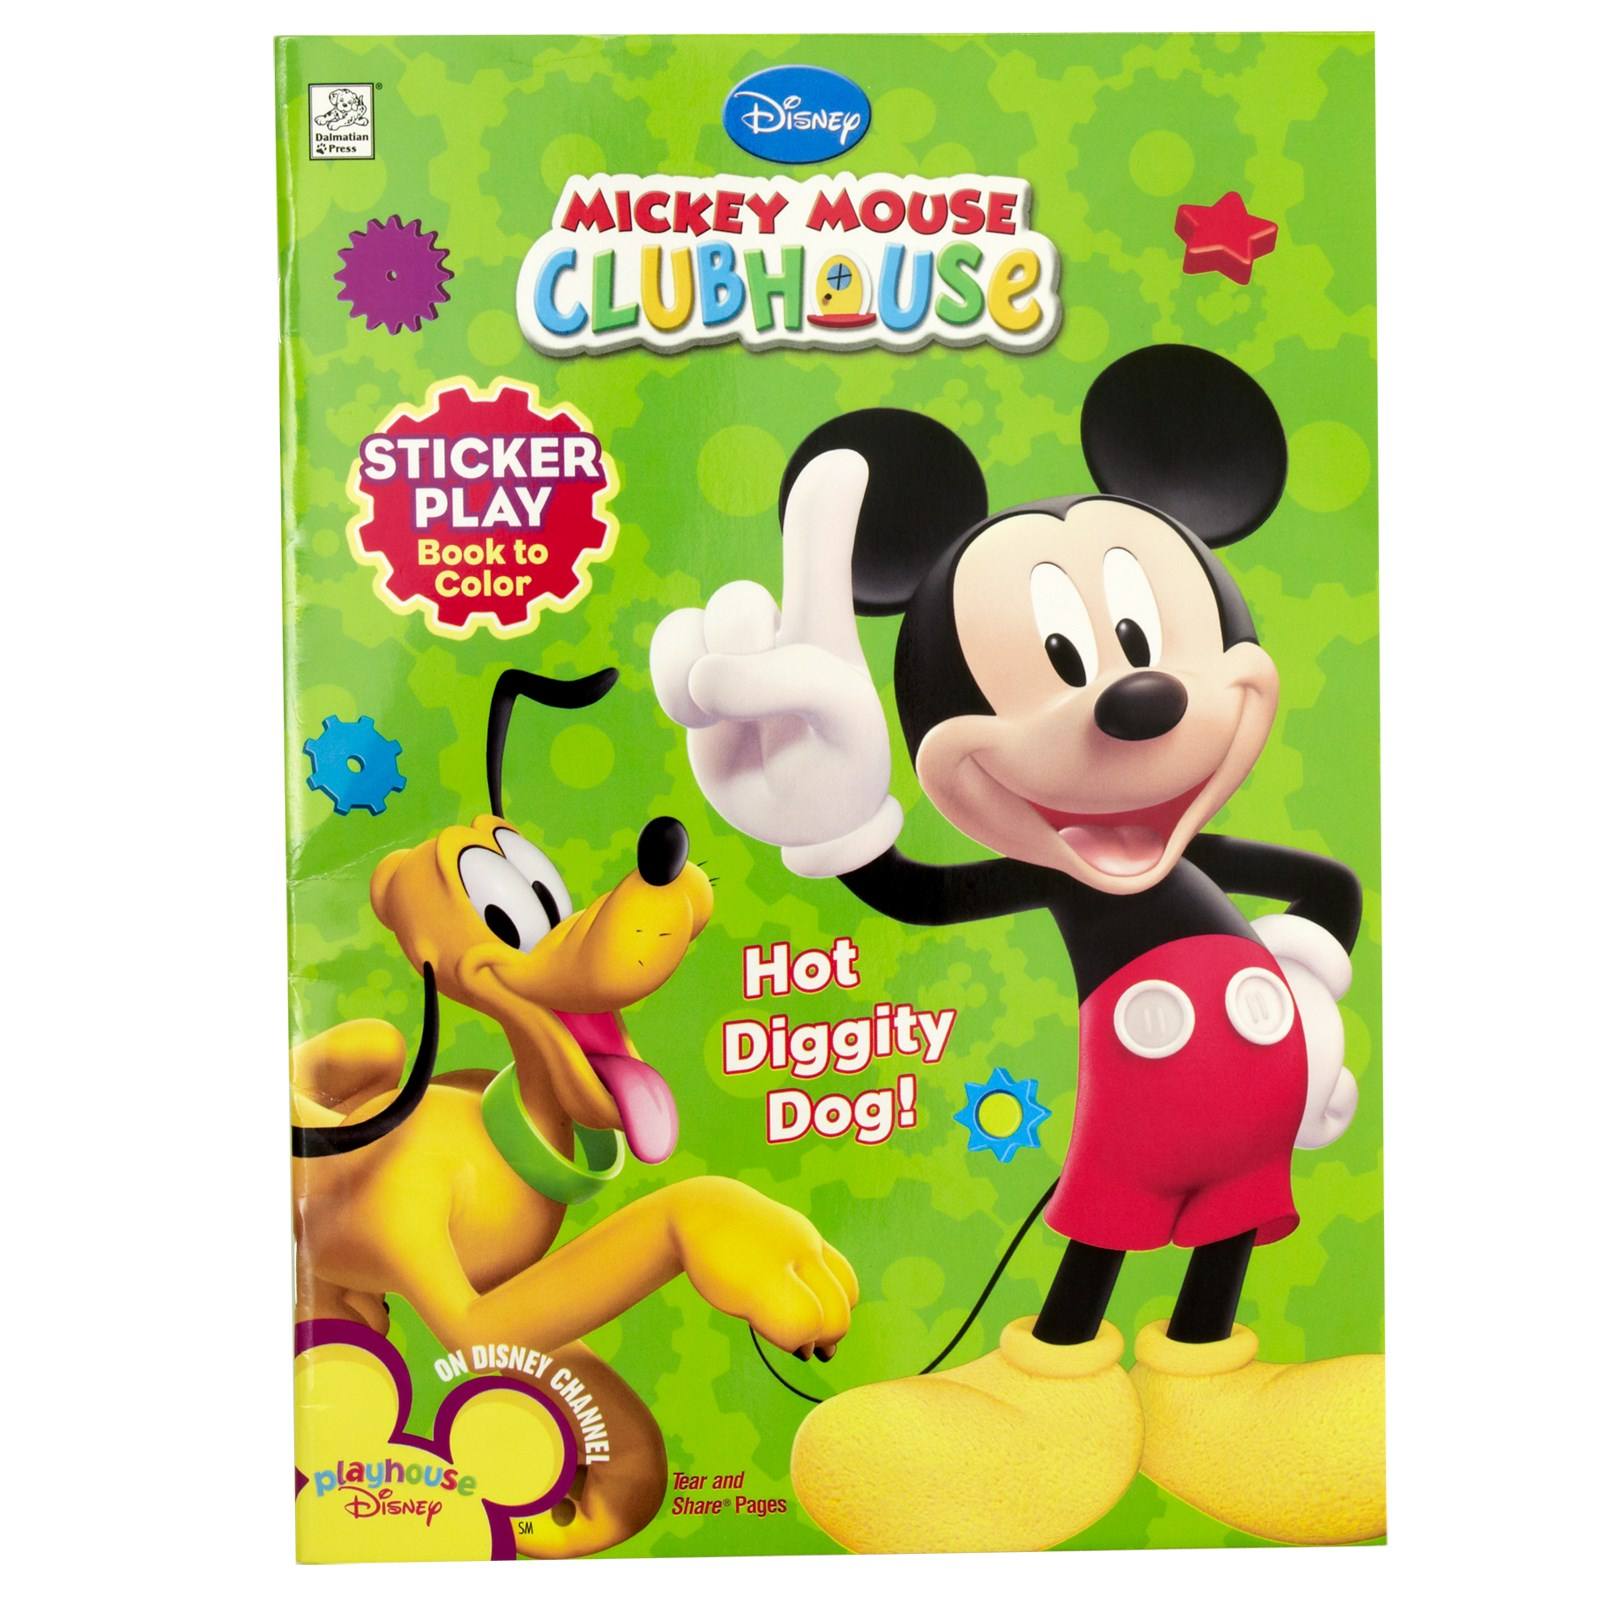 Disney Mickey Mouse Clubhouse Sticker Play Book